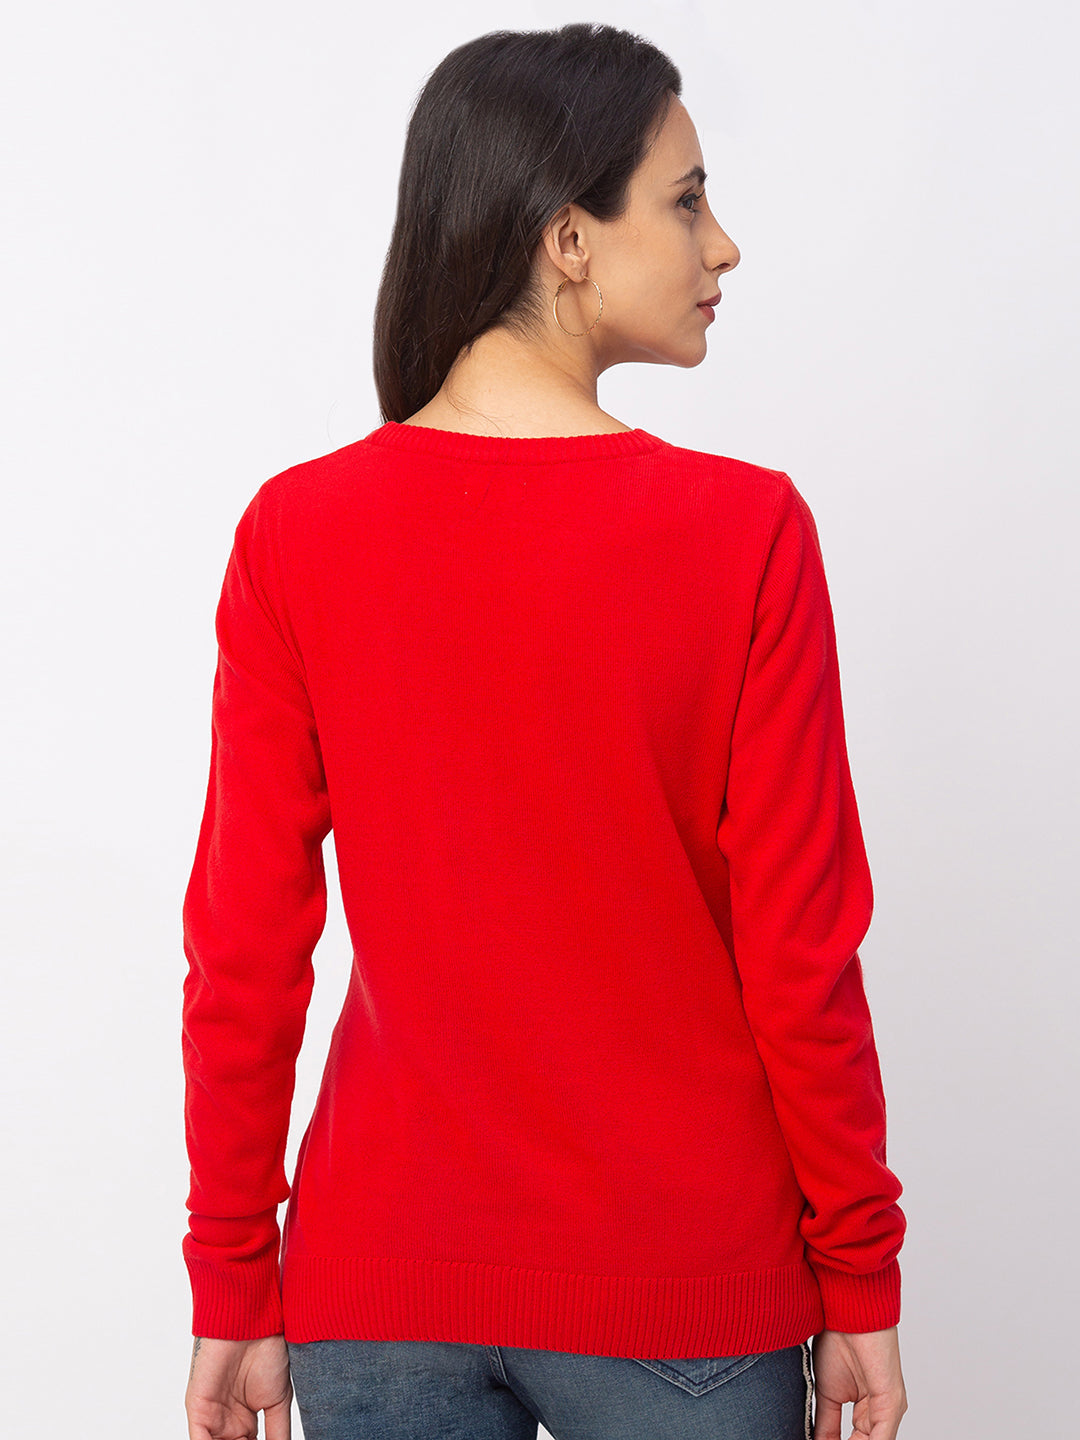 Globus Red Solid Sweater-3